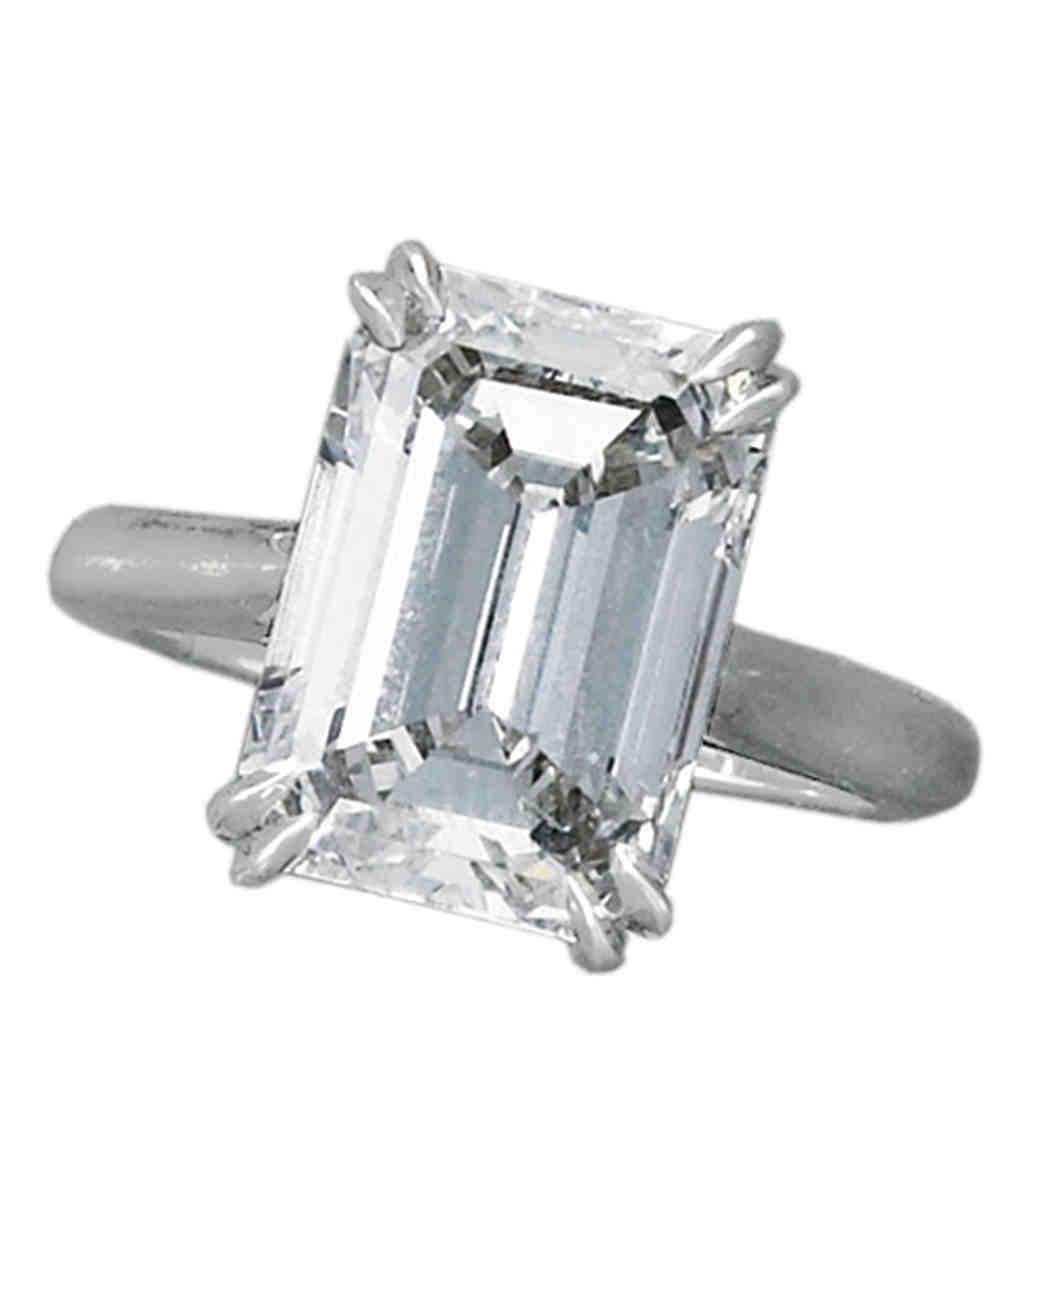 you diamonds an highlight cut beaverbrooks emerald will facets lovers shape clarity the choice diamond is cuts of clearly a style ring engagement rectangular home journal rings which lovely stones very for long